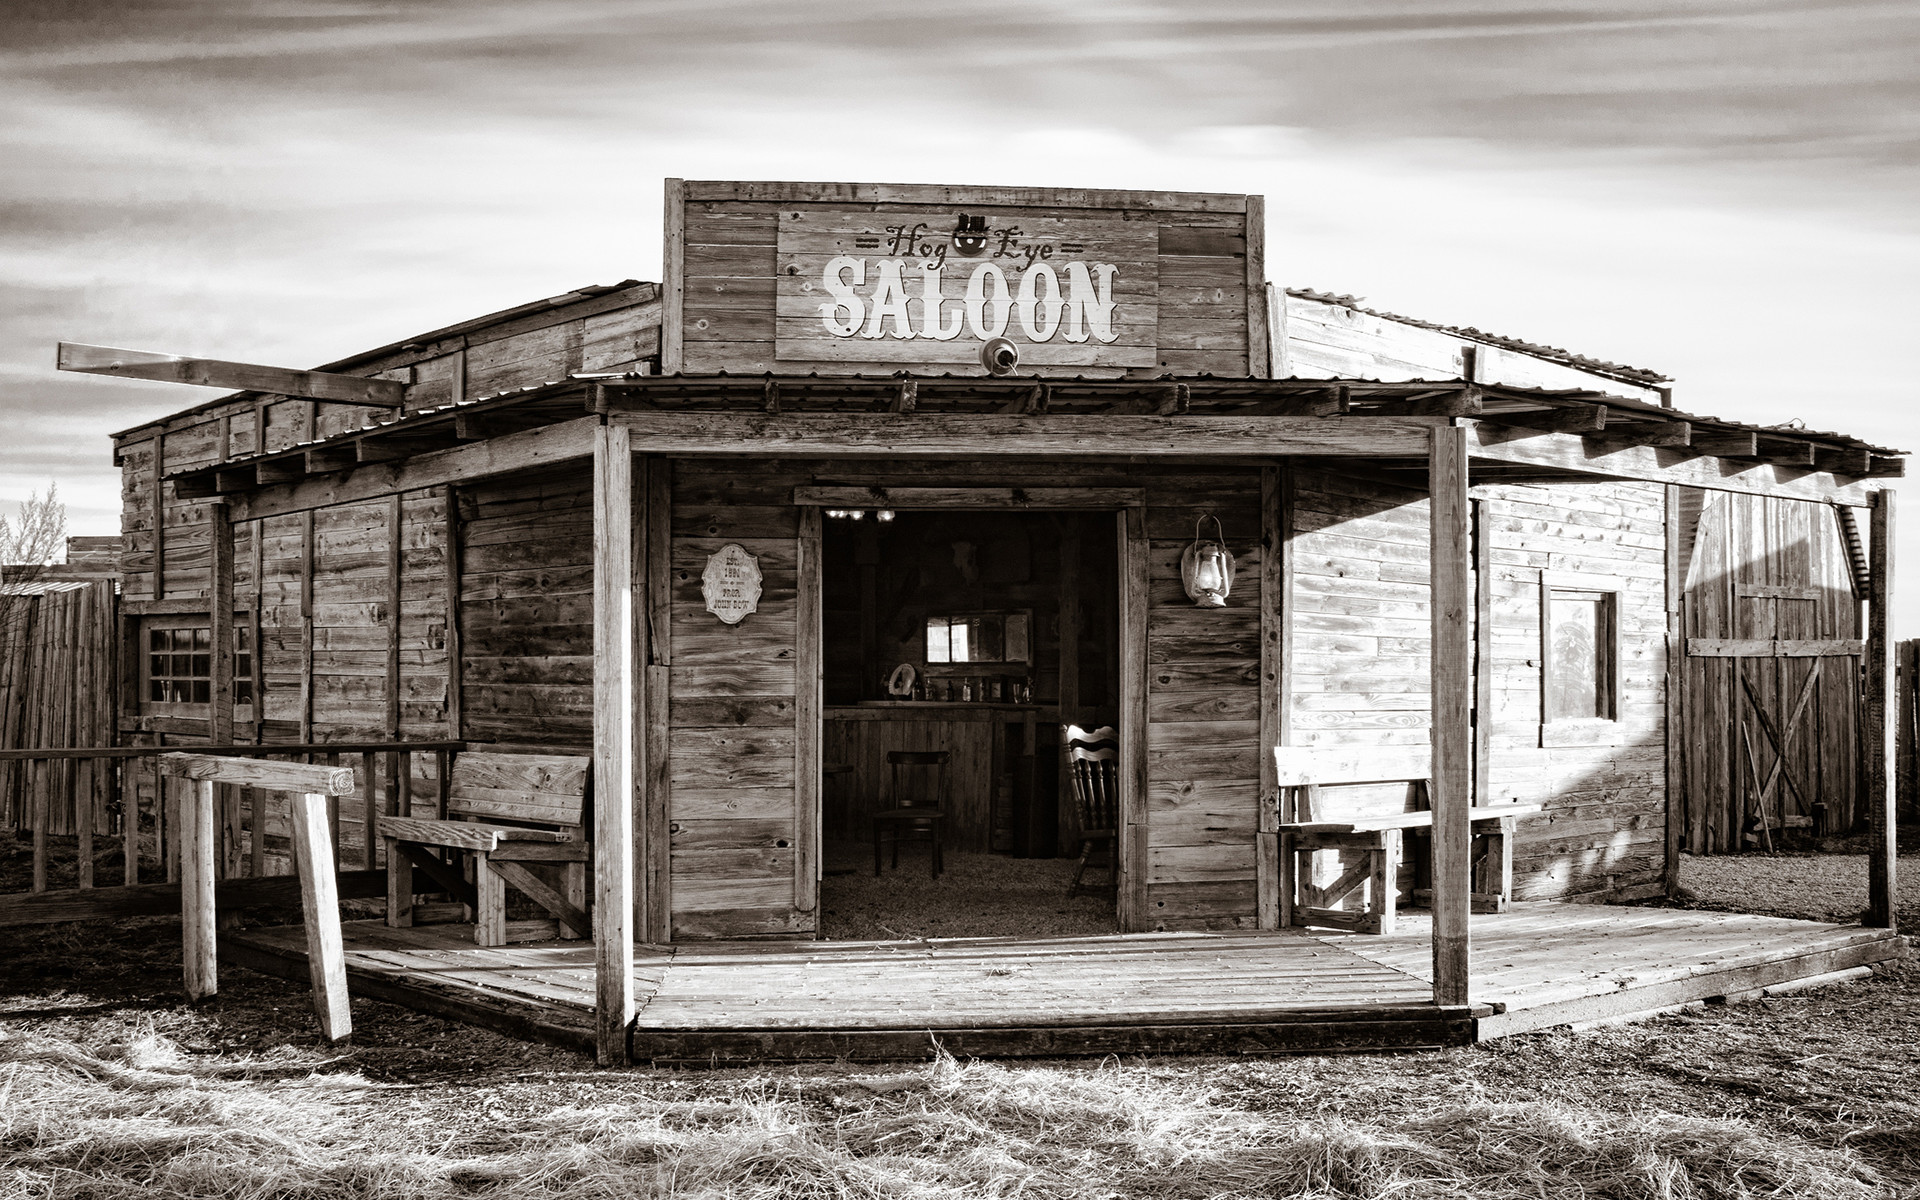 1920x1200 Saloon Bar Wild West Sepia american retro world history drinks architecture  buildings black white bw wallpaper |  | 40343 | WallpaperUP